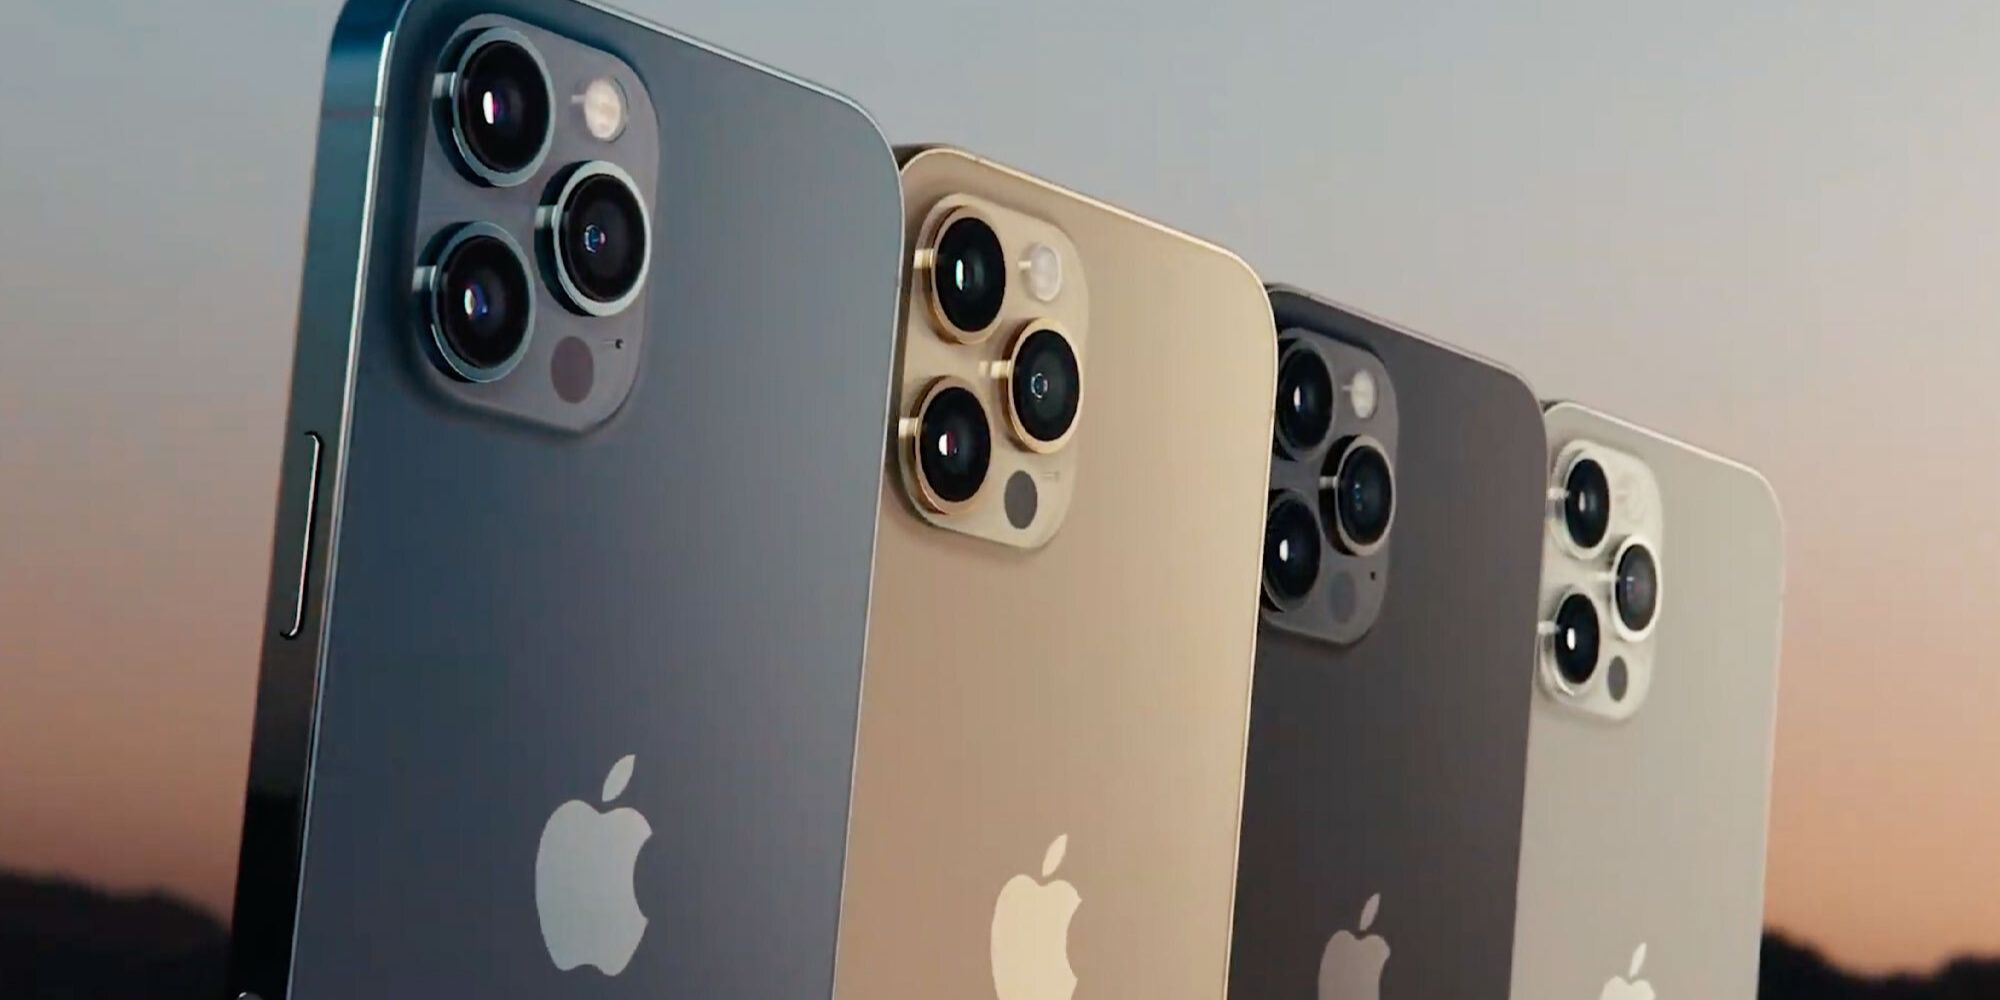 iPhone 13 Release Date: When To Expect Apple's 2021 iPhone